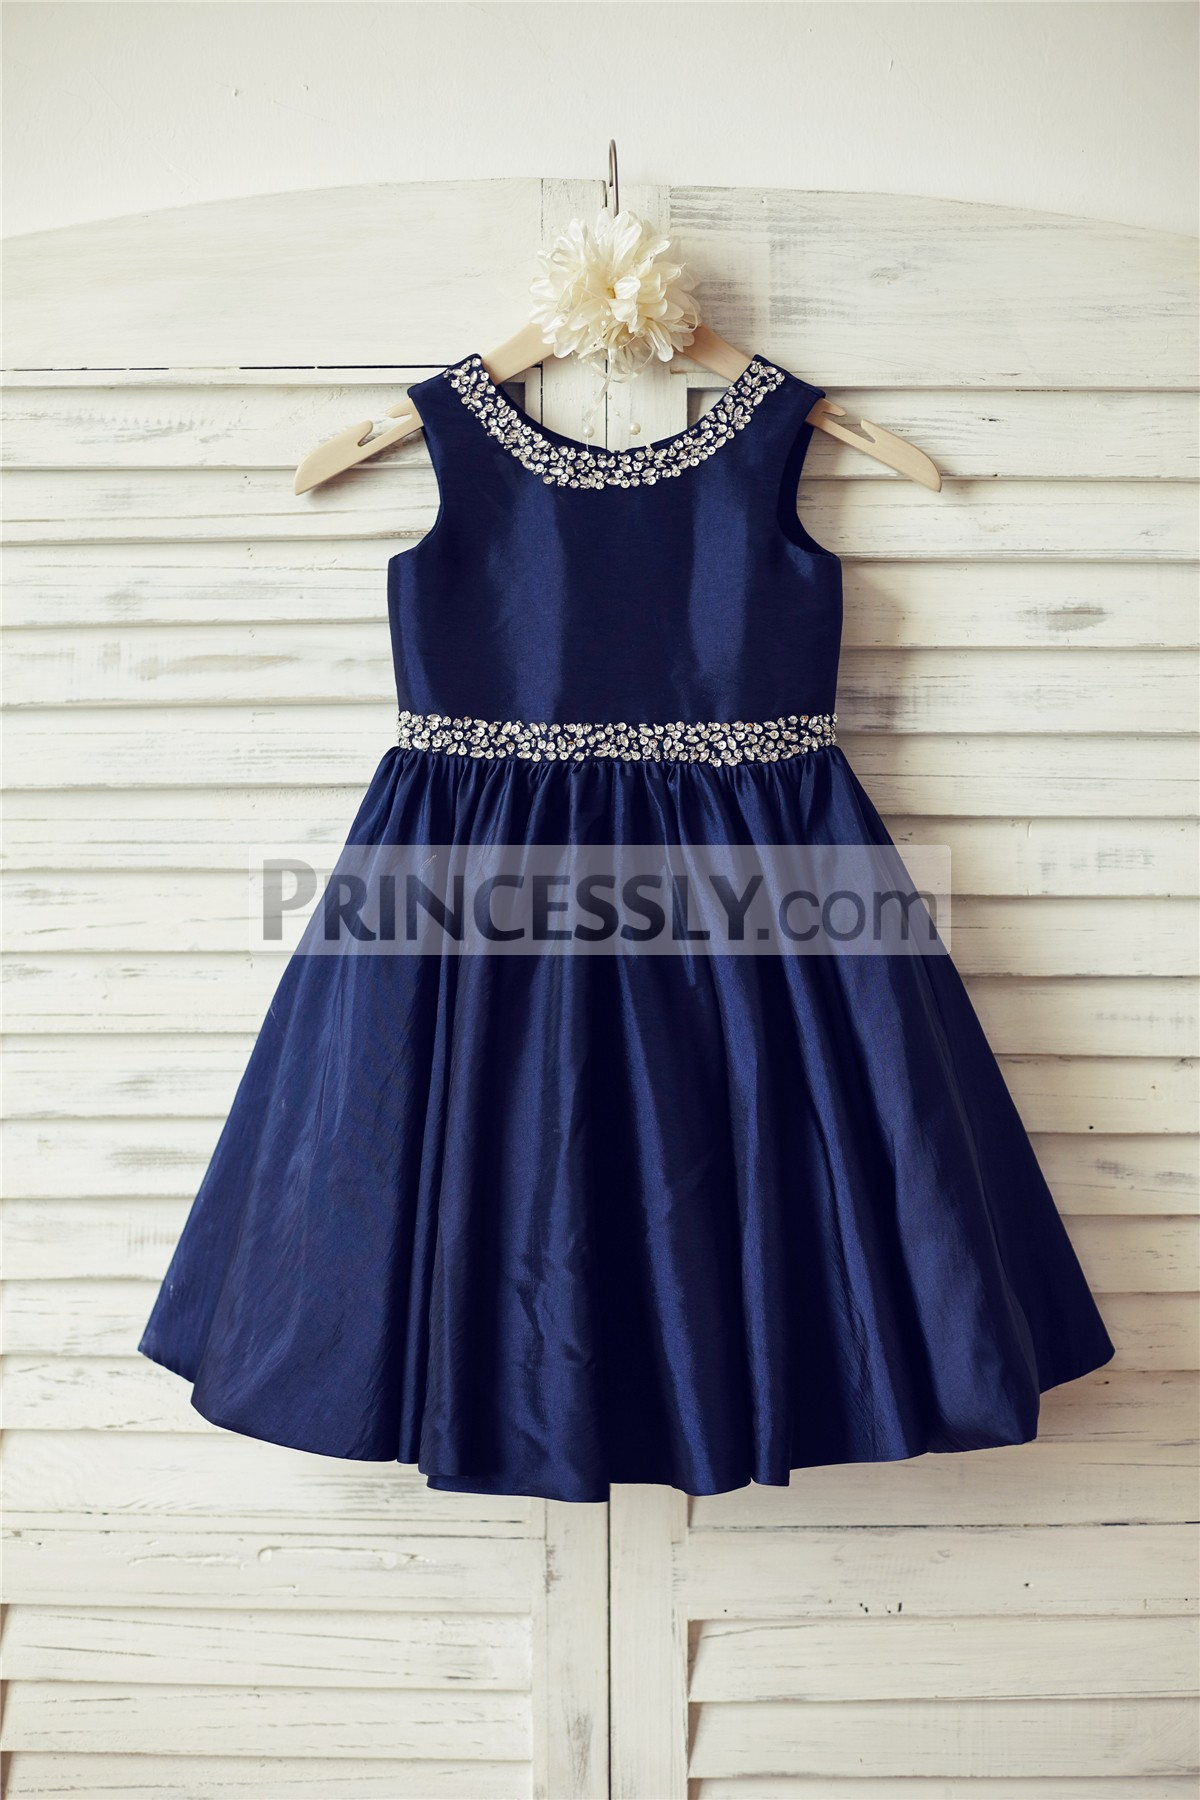 Beaded navy blue taffeta wedding flower girl dress avivaly for Navy blue dresses for wedding